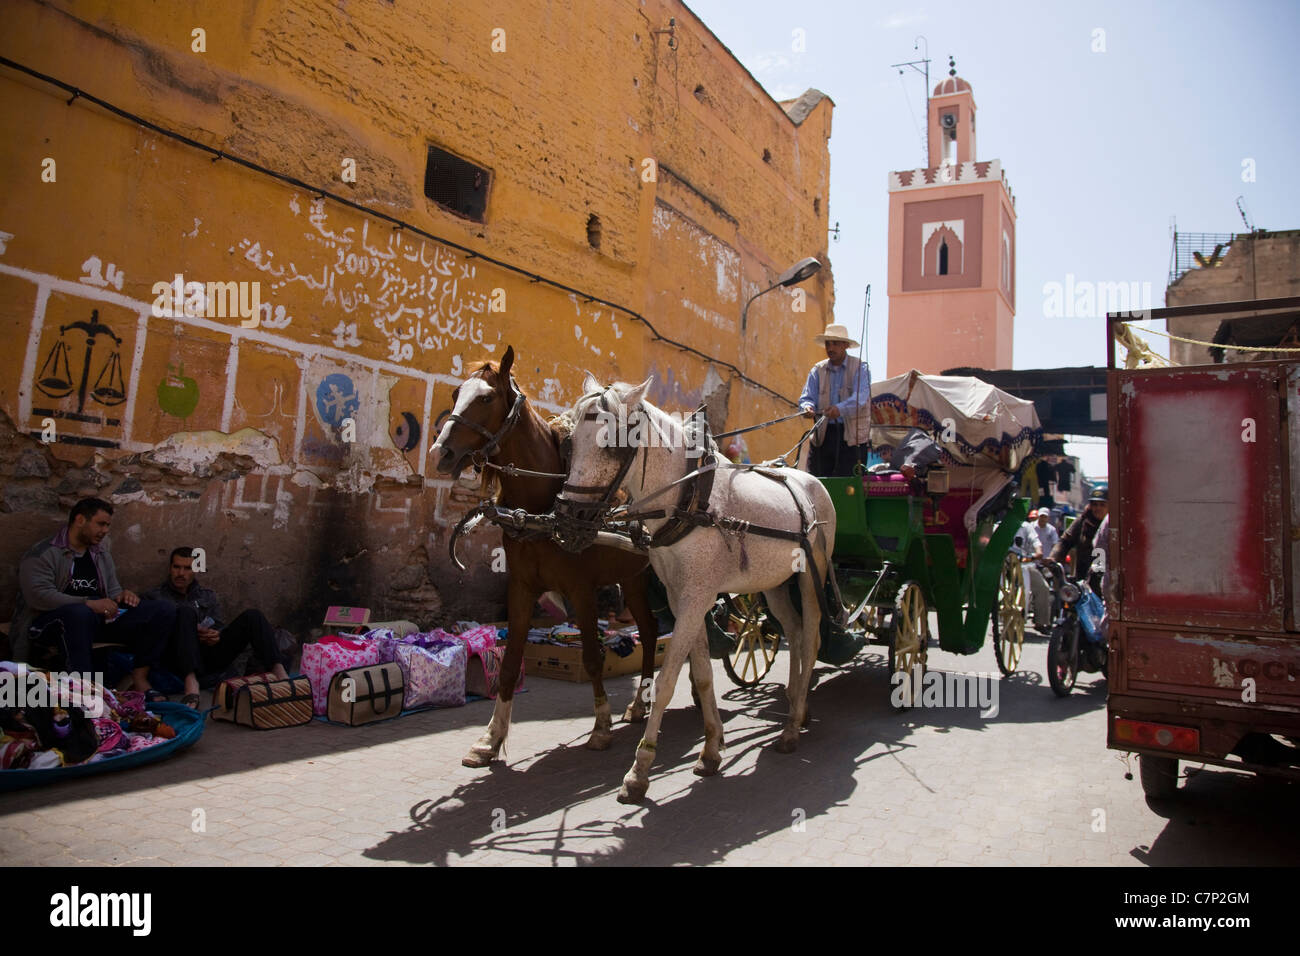 Horse and carriage in the souk of Marrakech - Stock Image